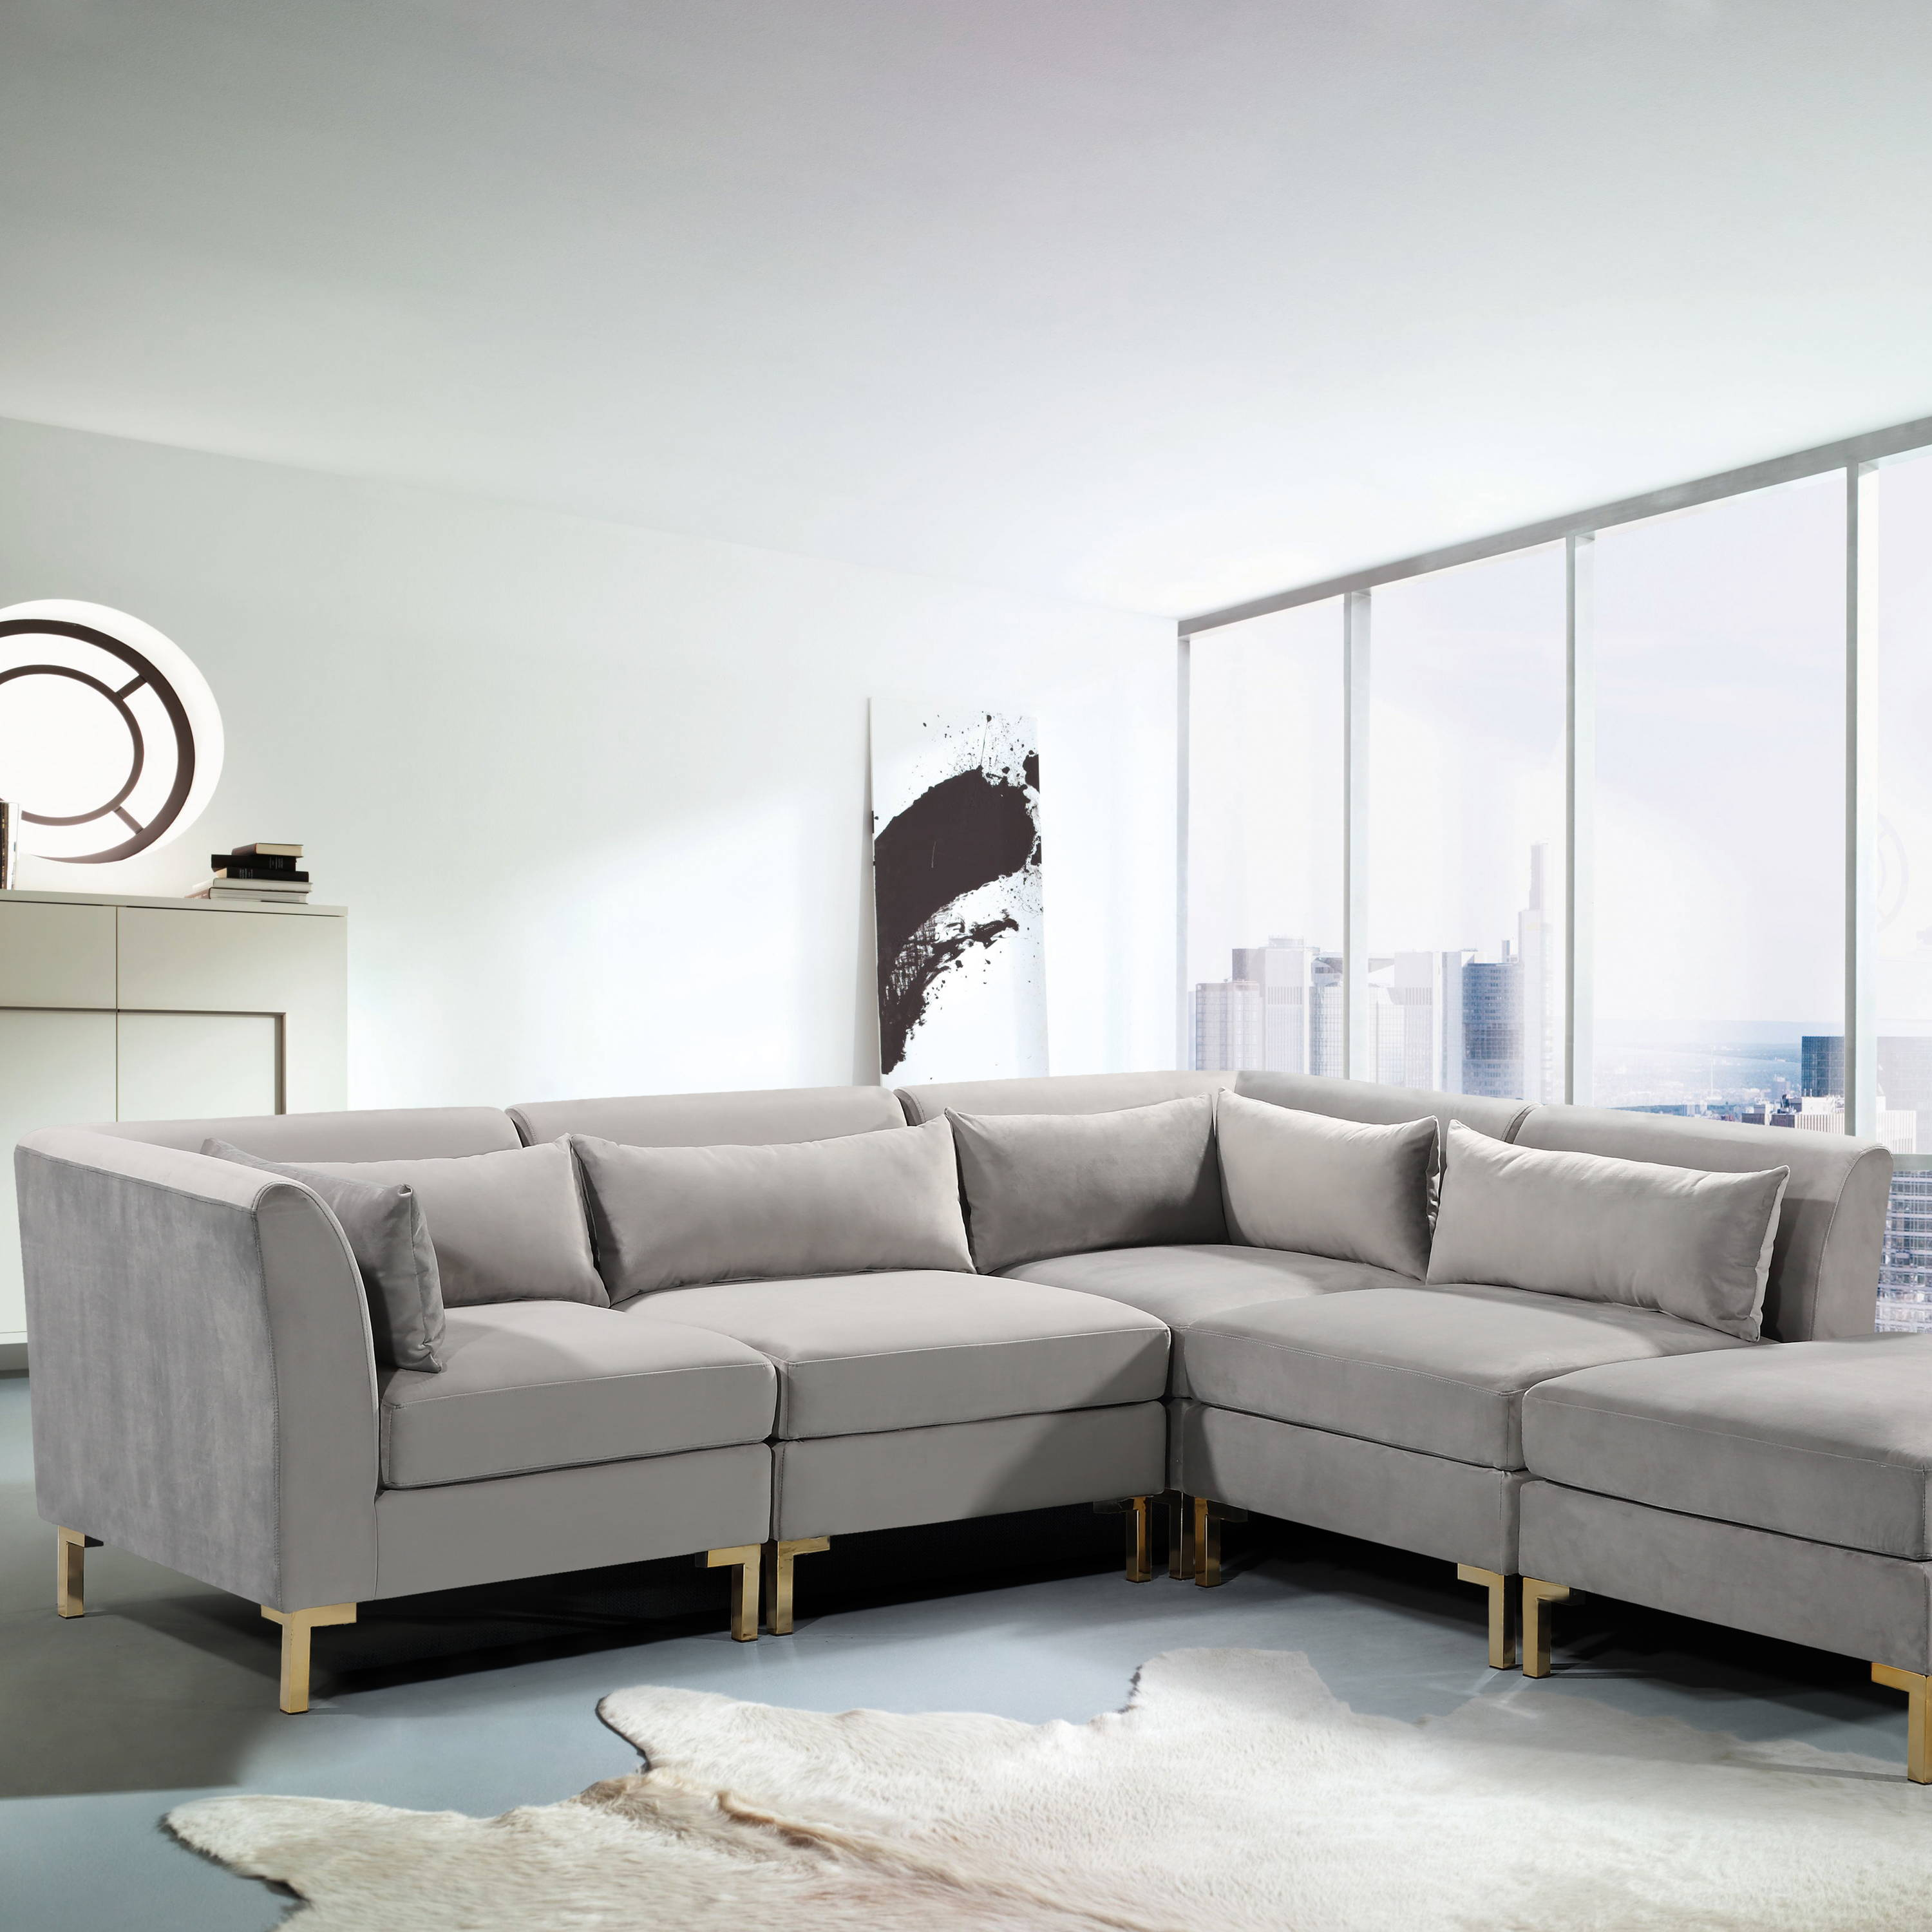 A living room with the grey Iconic Home Girardi modular sectional sofa in the middle